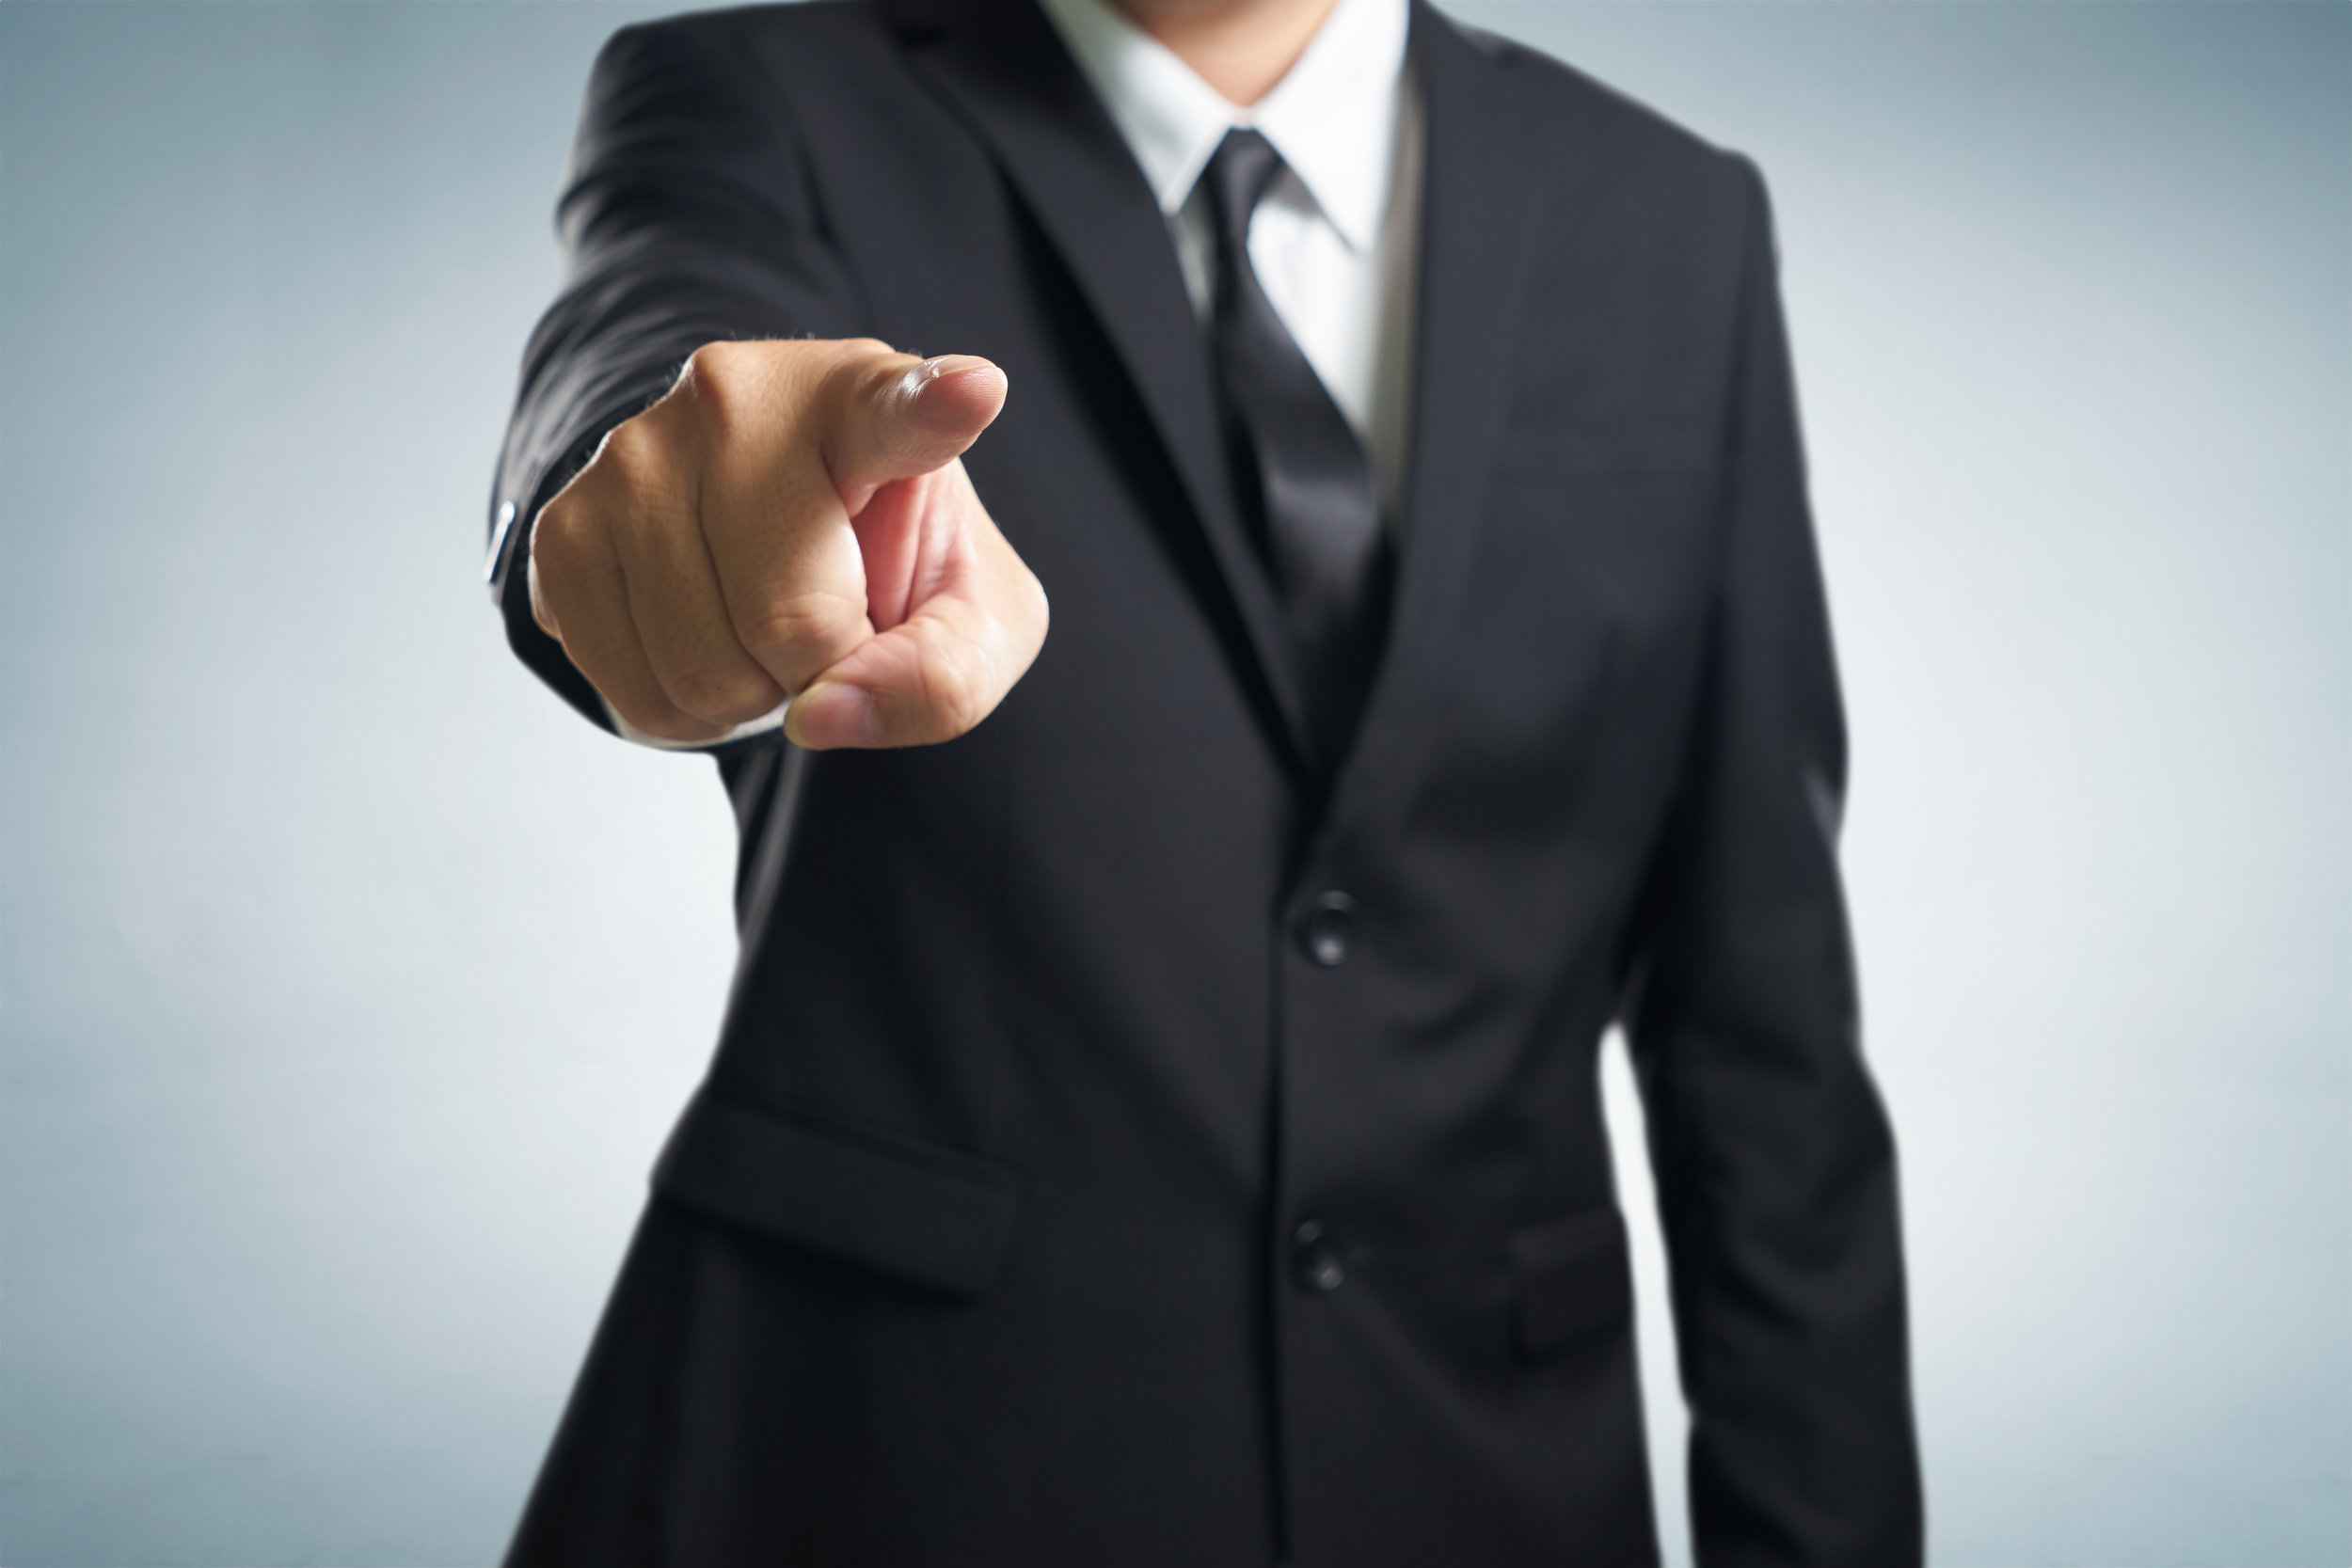 graphicstock-business-man-points-his-finger-at-you-focus-on-hand-blur-out-the-suit_rd0n7nDesl.jpg